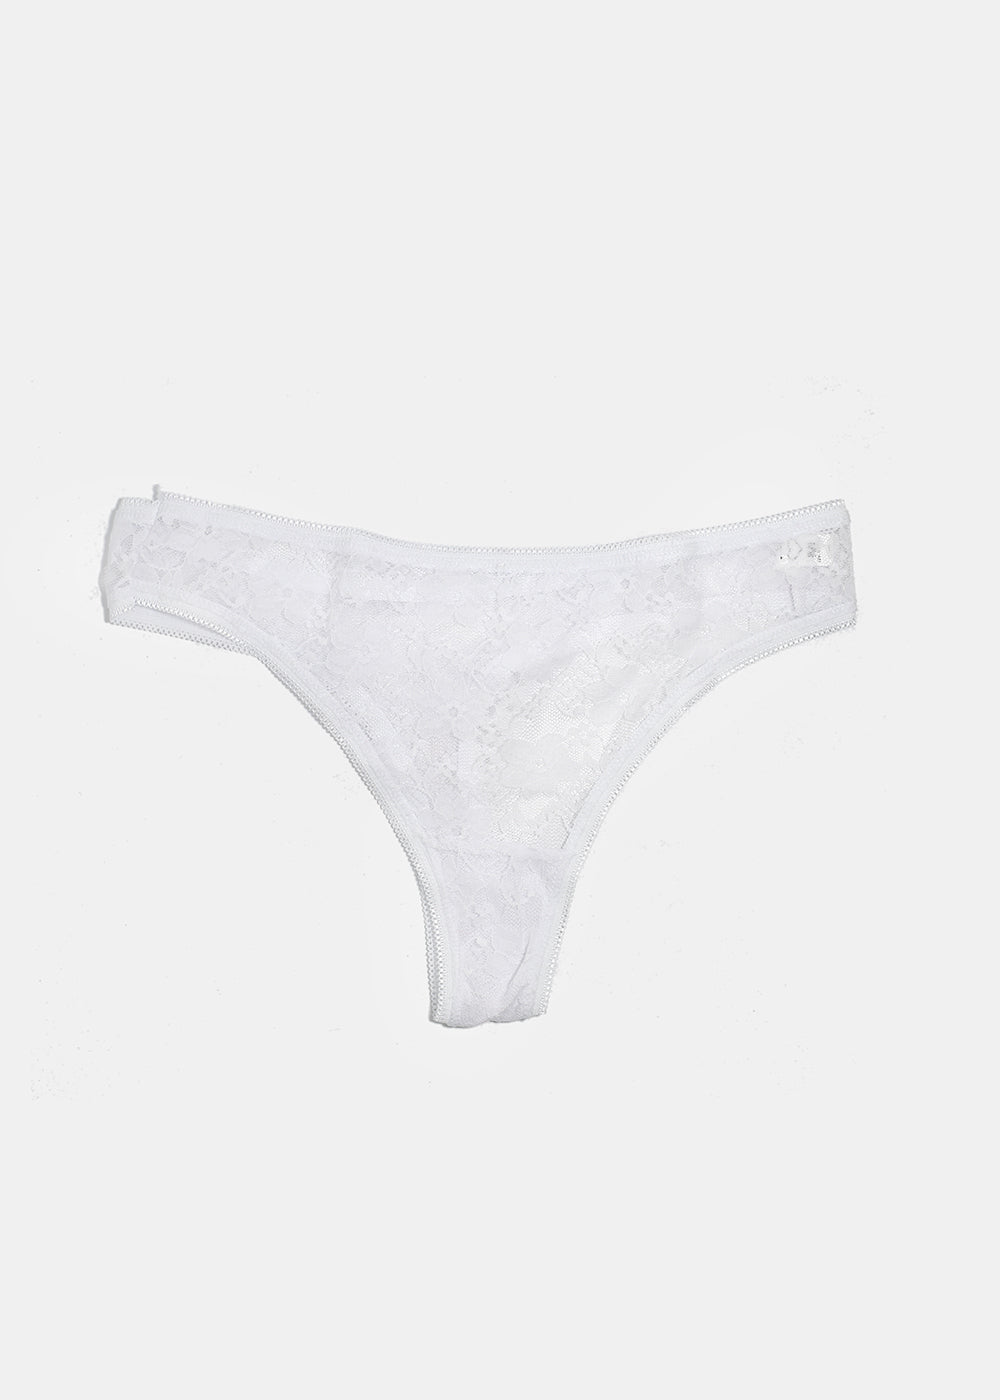 Floral Lace Thong Panty- White